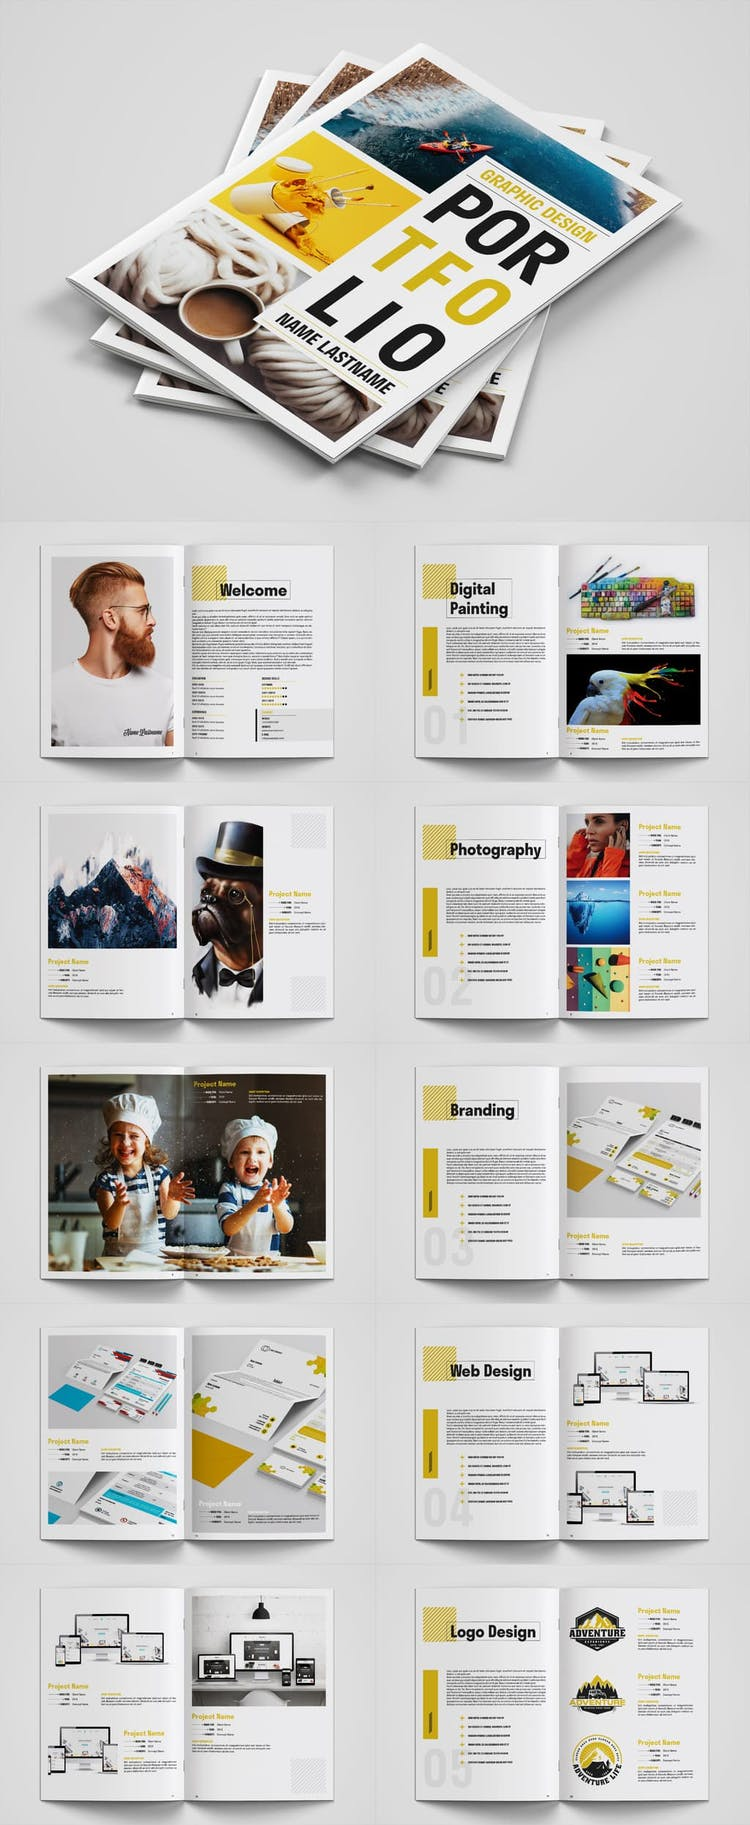 60 Best Indesign Portfolio Templates Redokun,Wrist Name Tattoos Designs On Arm